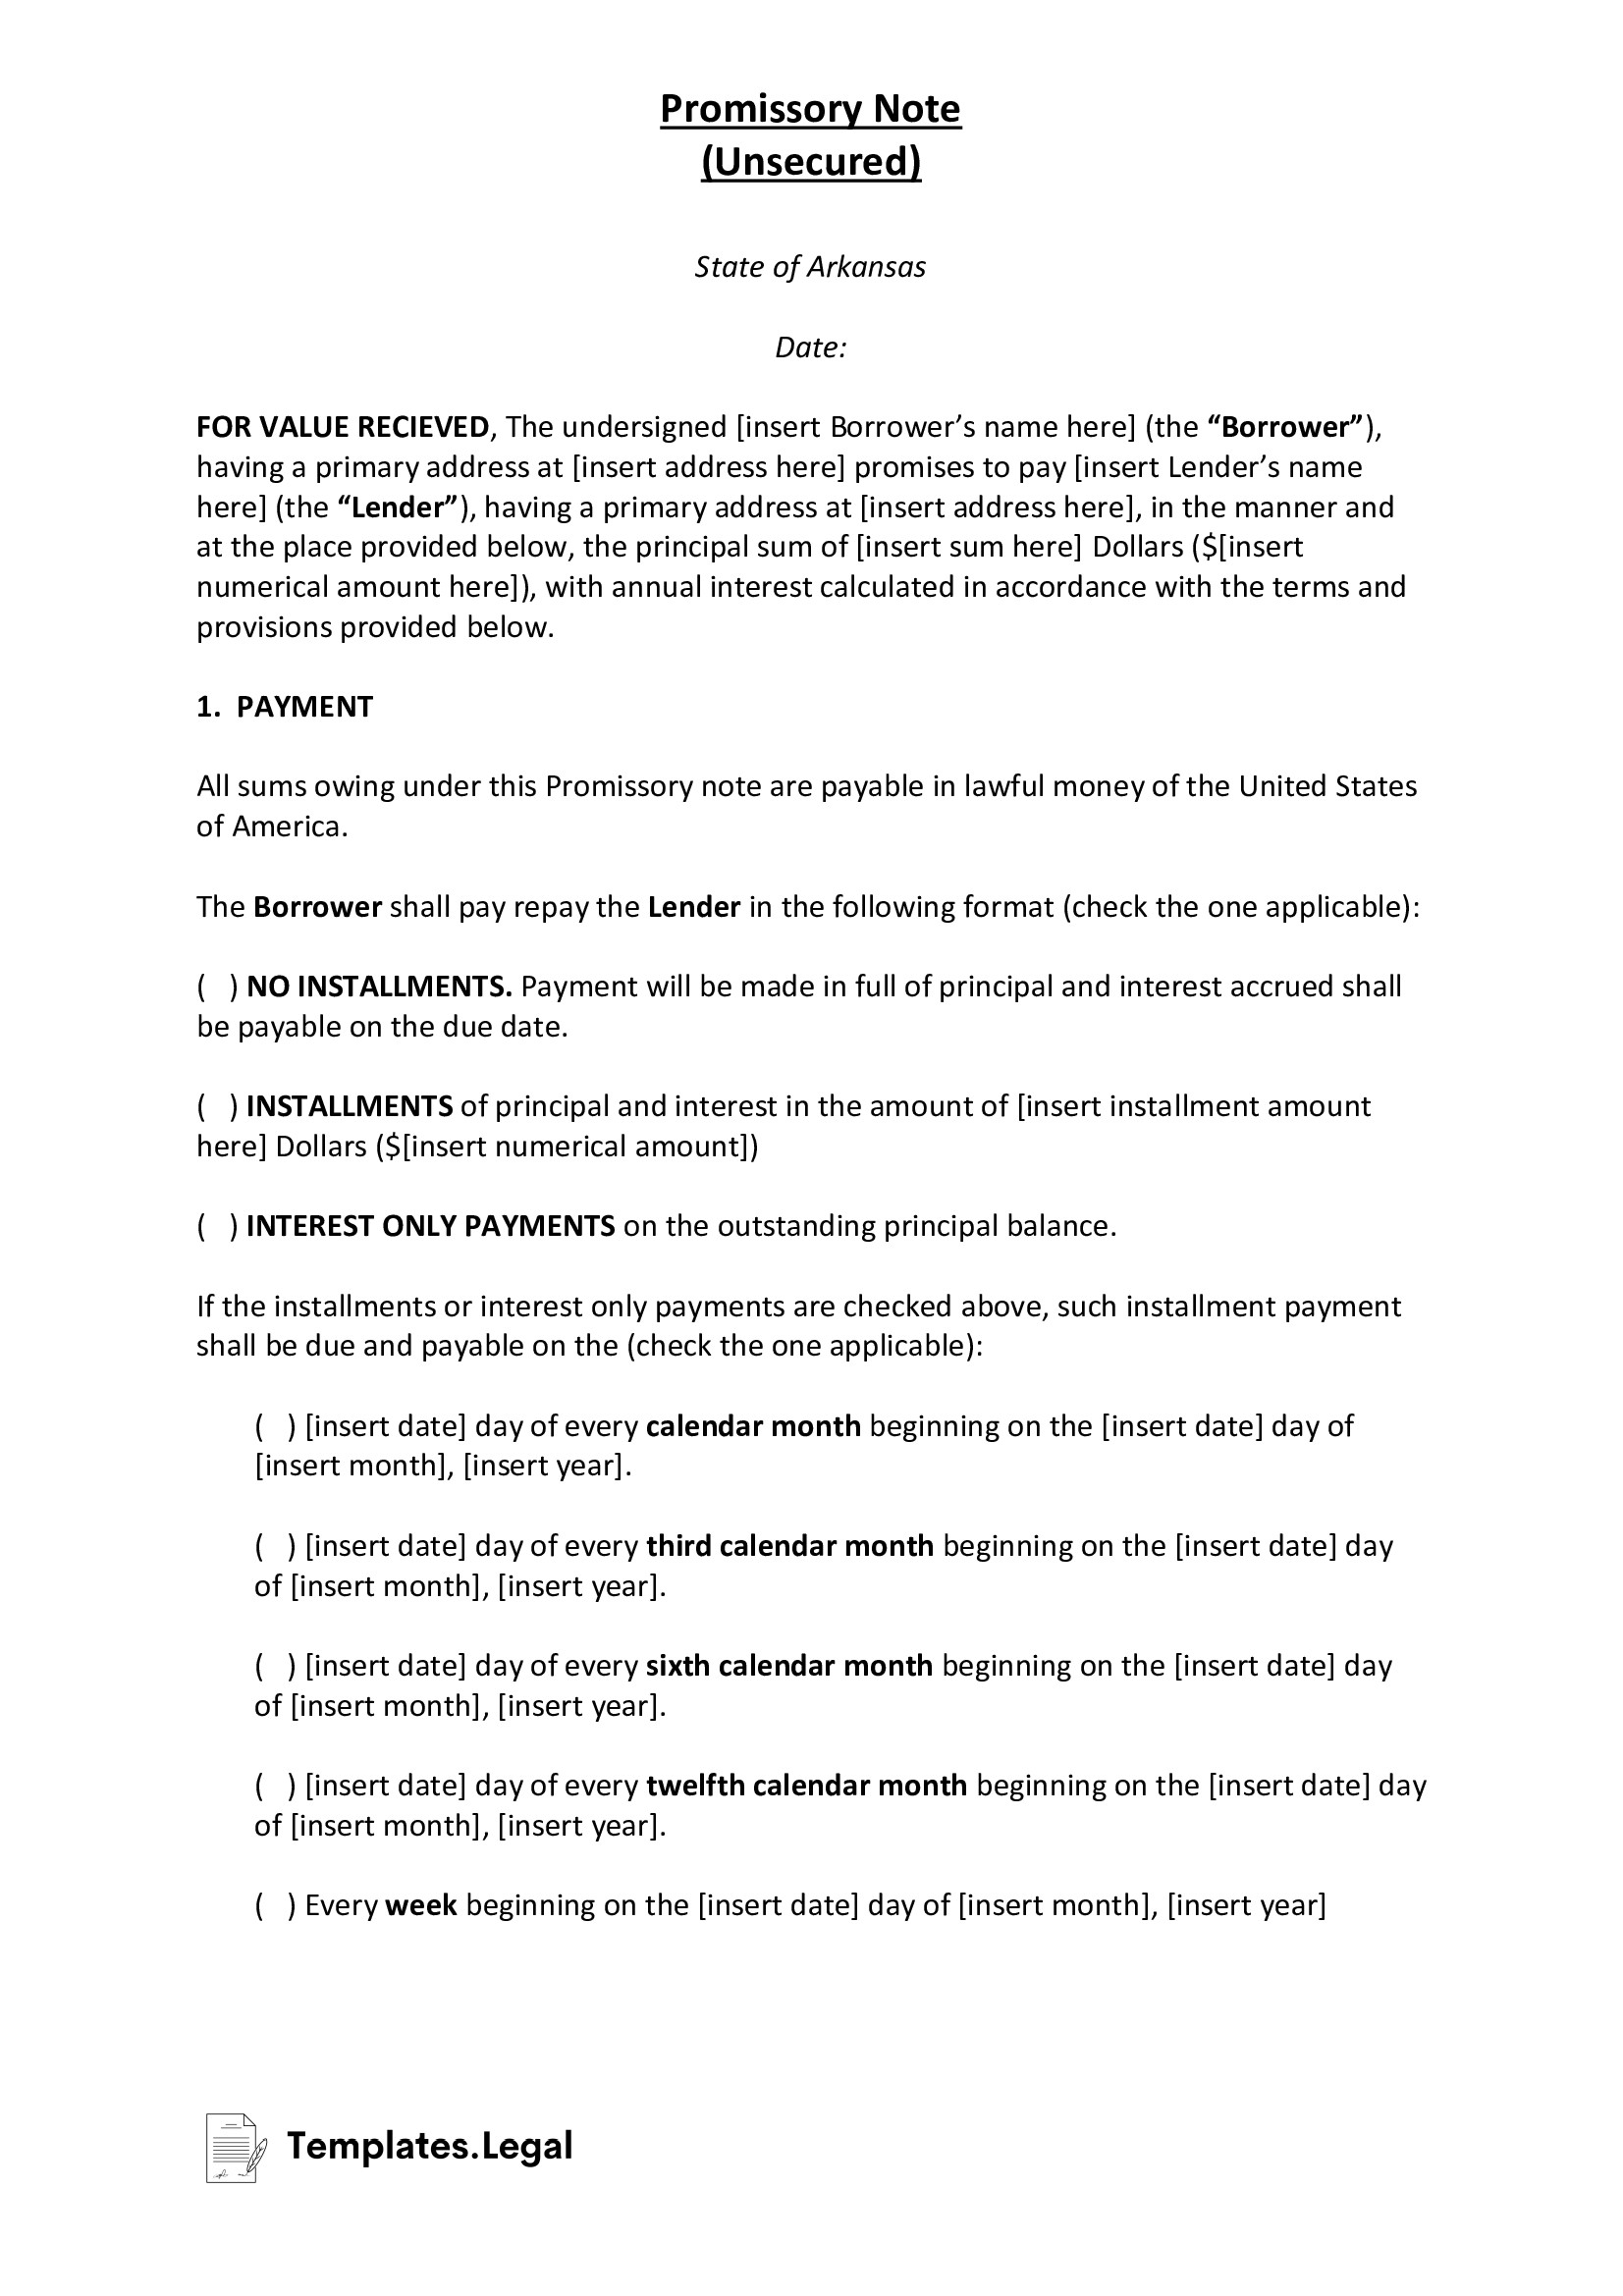 Arkansas Unsecured Promissory Note - Templates.Legal